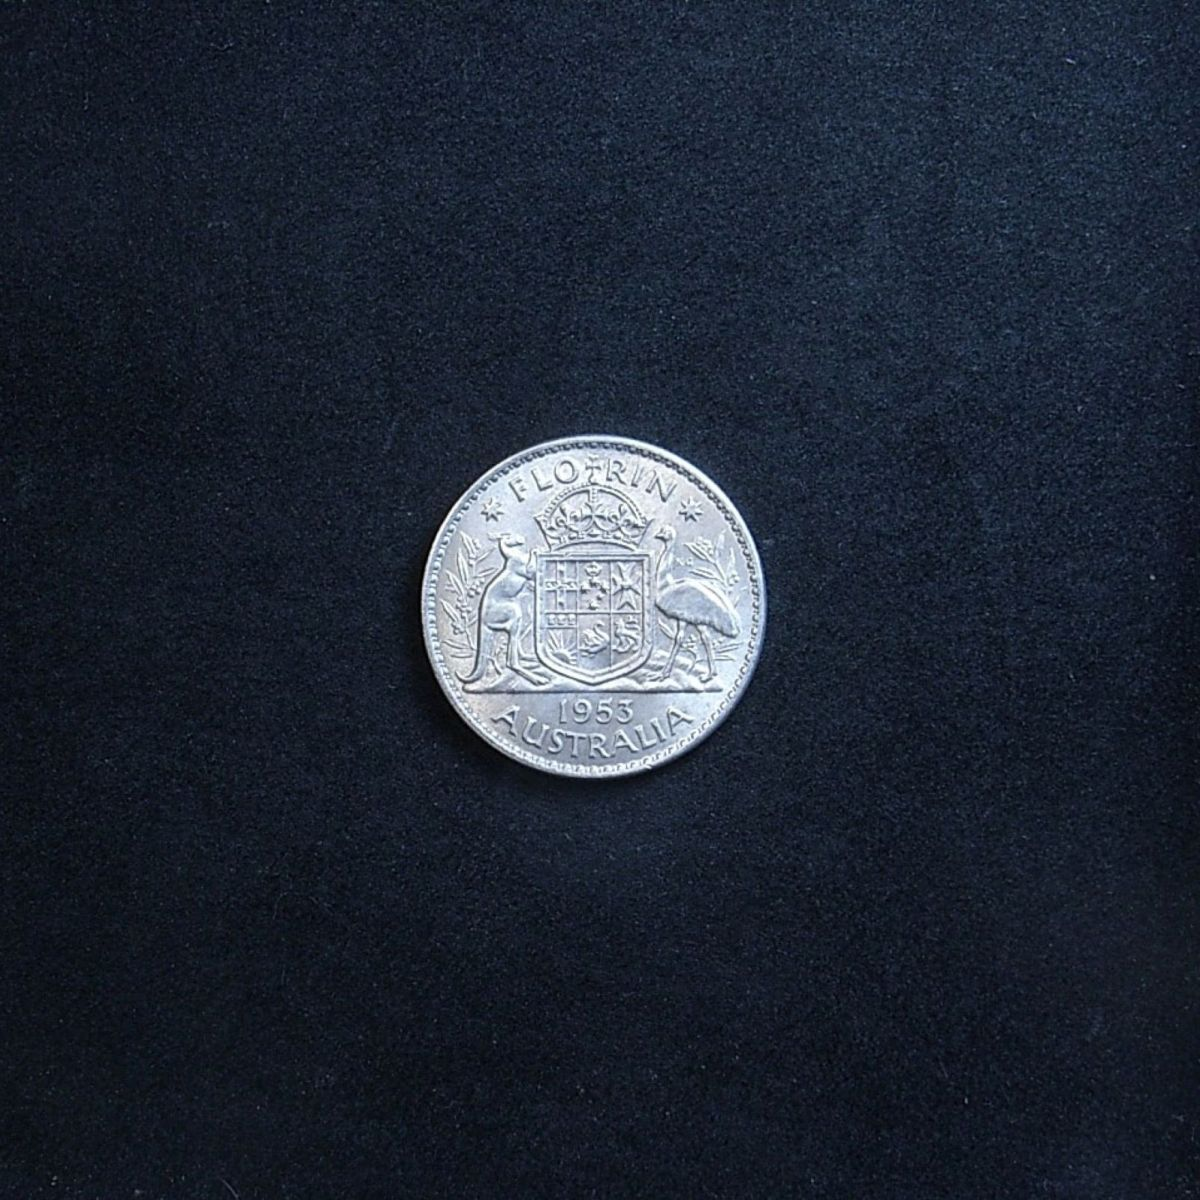 Aussie 1953 Florin reverse showing the coin's lustre